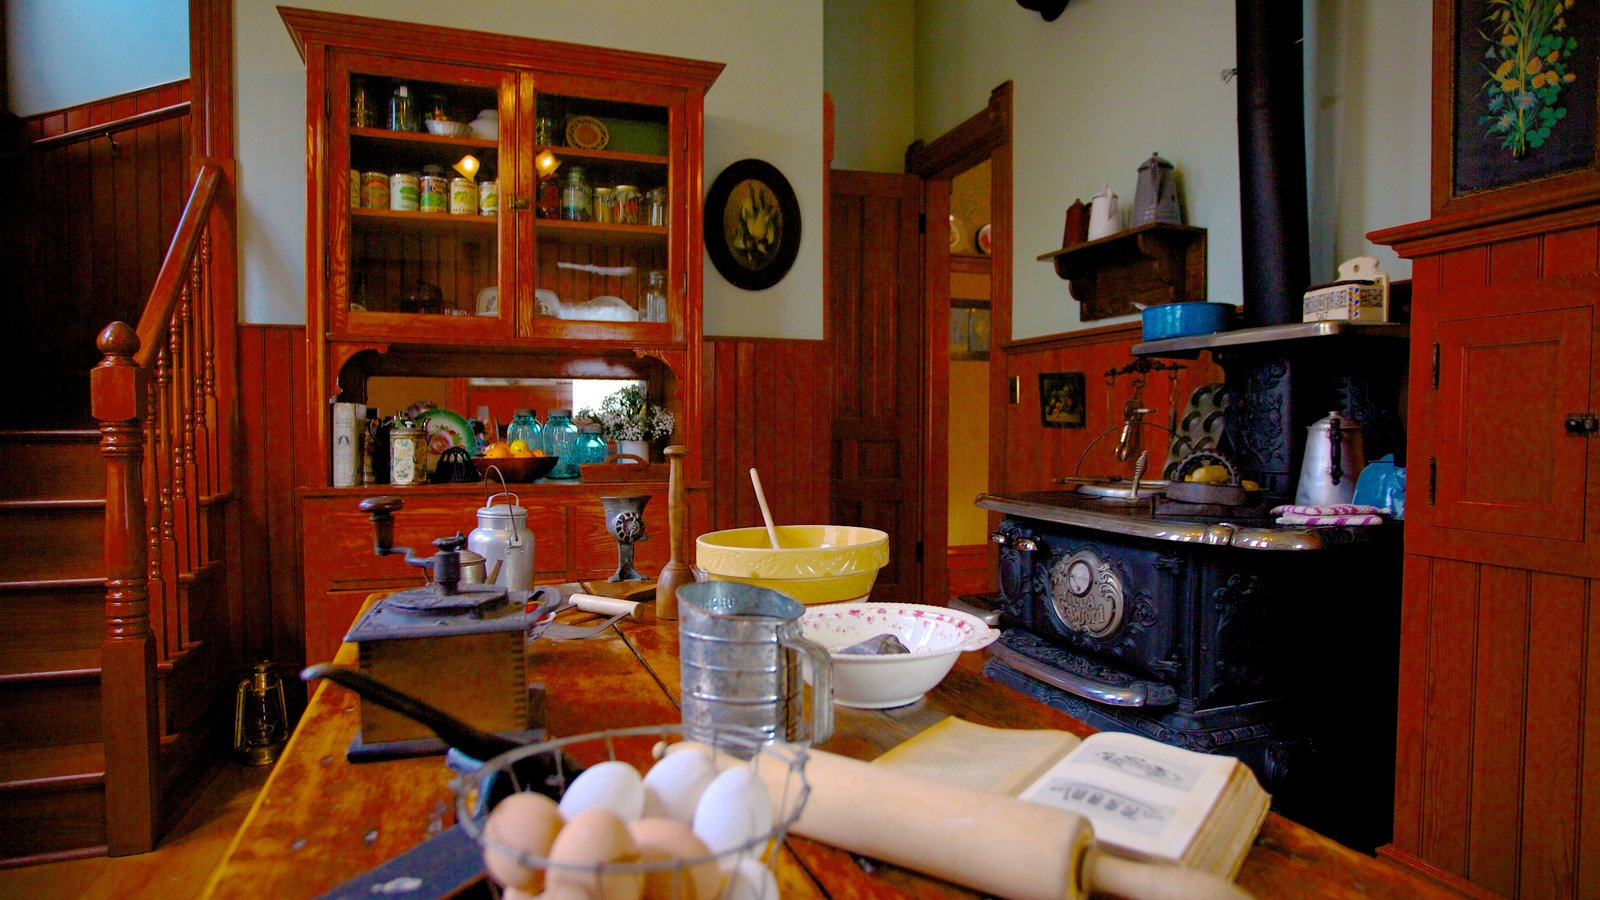 Ernest Hemingway Museum and House featuring interior views and food